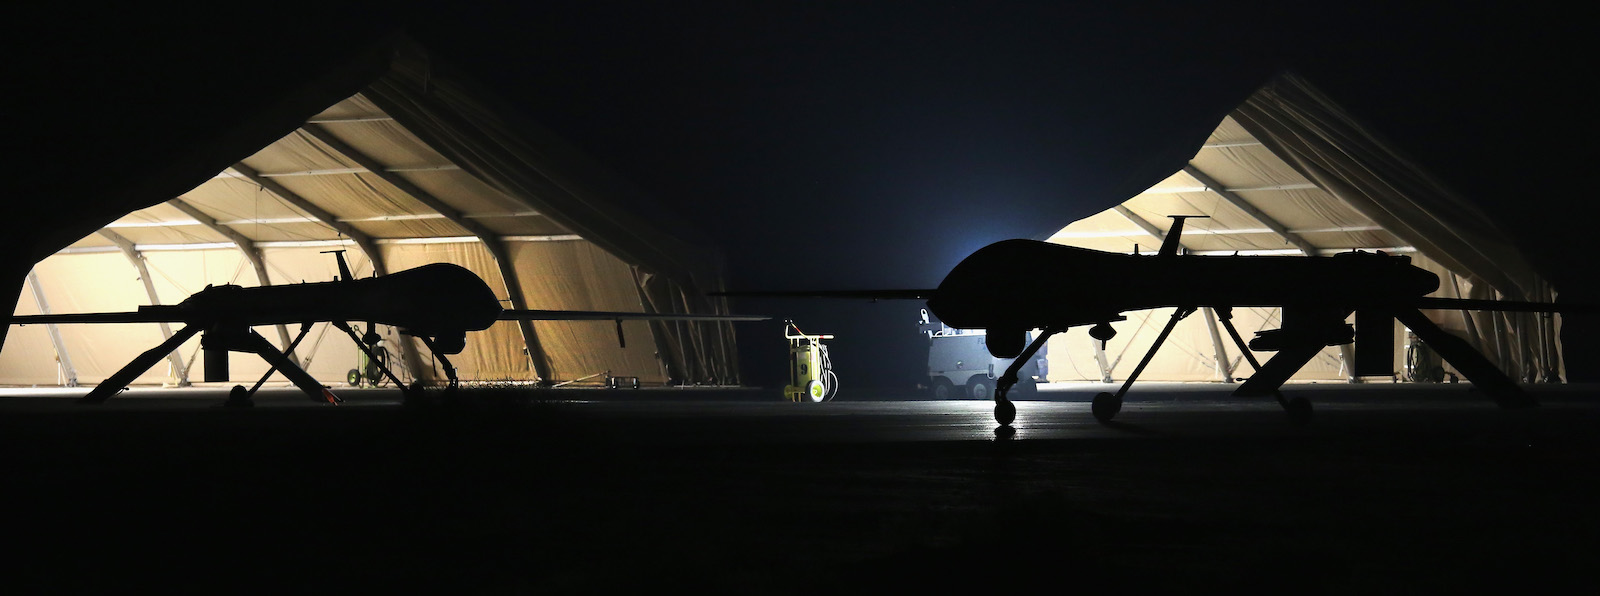 A US Air Force MQ-1B Predator unmanned aerial vehicle in the Persian Gulf. (Photo: John Moore/Getty)